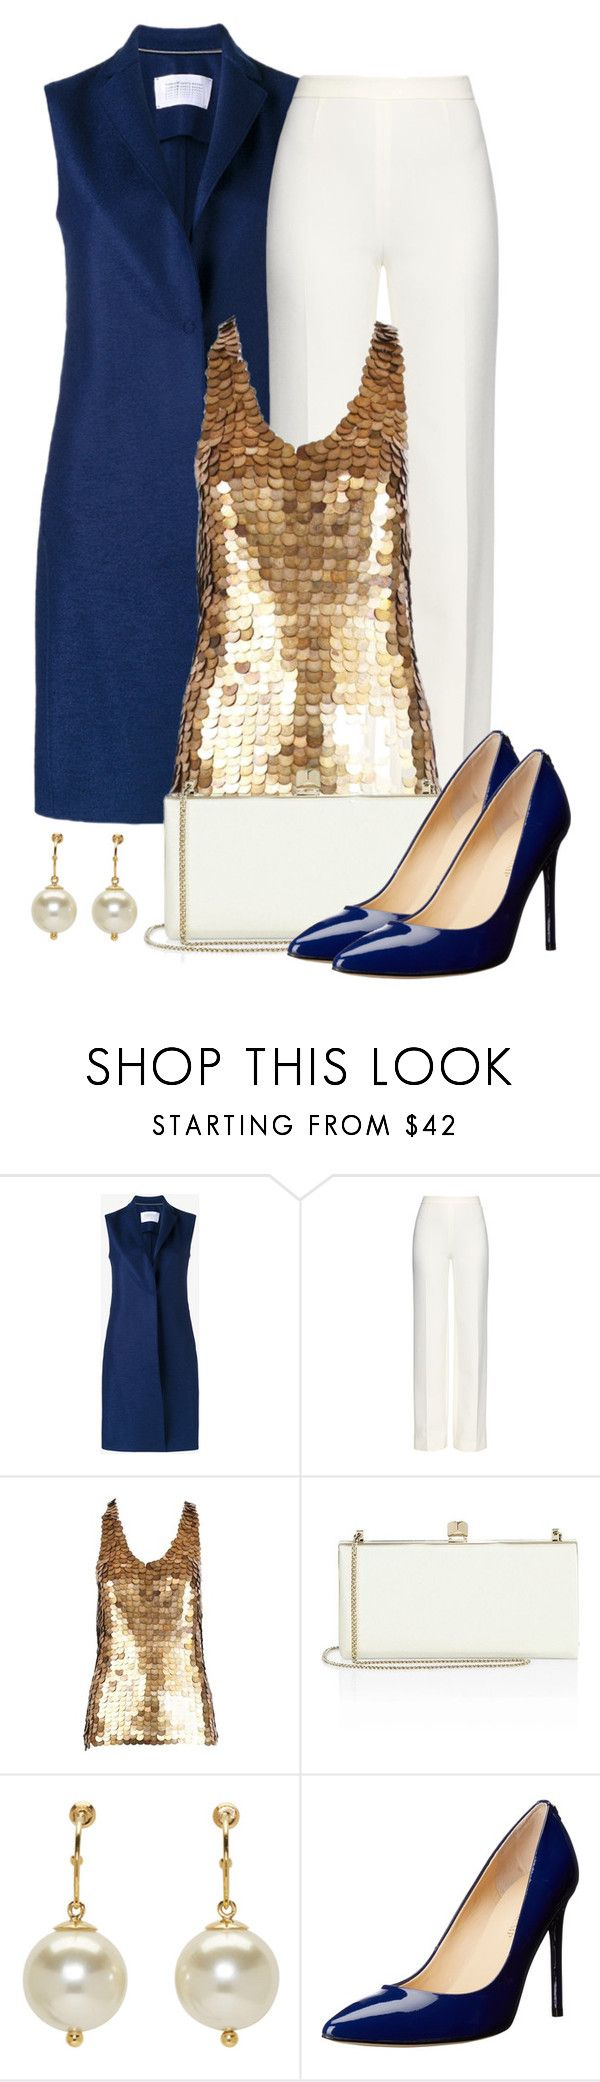 """Untitled #1471"" by gallant81 ❤ liked on Polyvore featuring Harris Wharf London, Diane Von Furstenberg, Alexander McQueen, Jimmy Choo, Simone Rocha and Ivanka Trump"